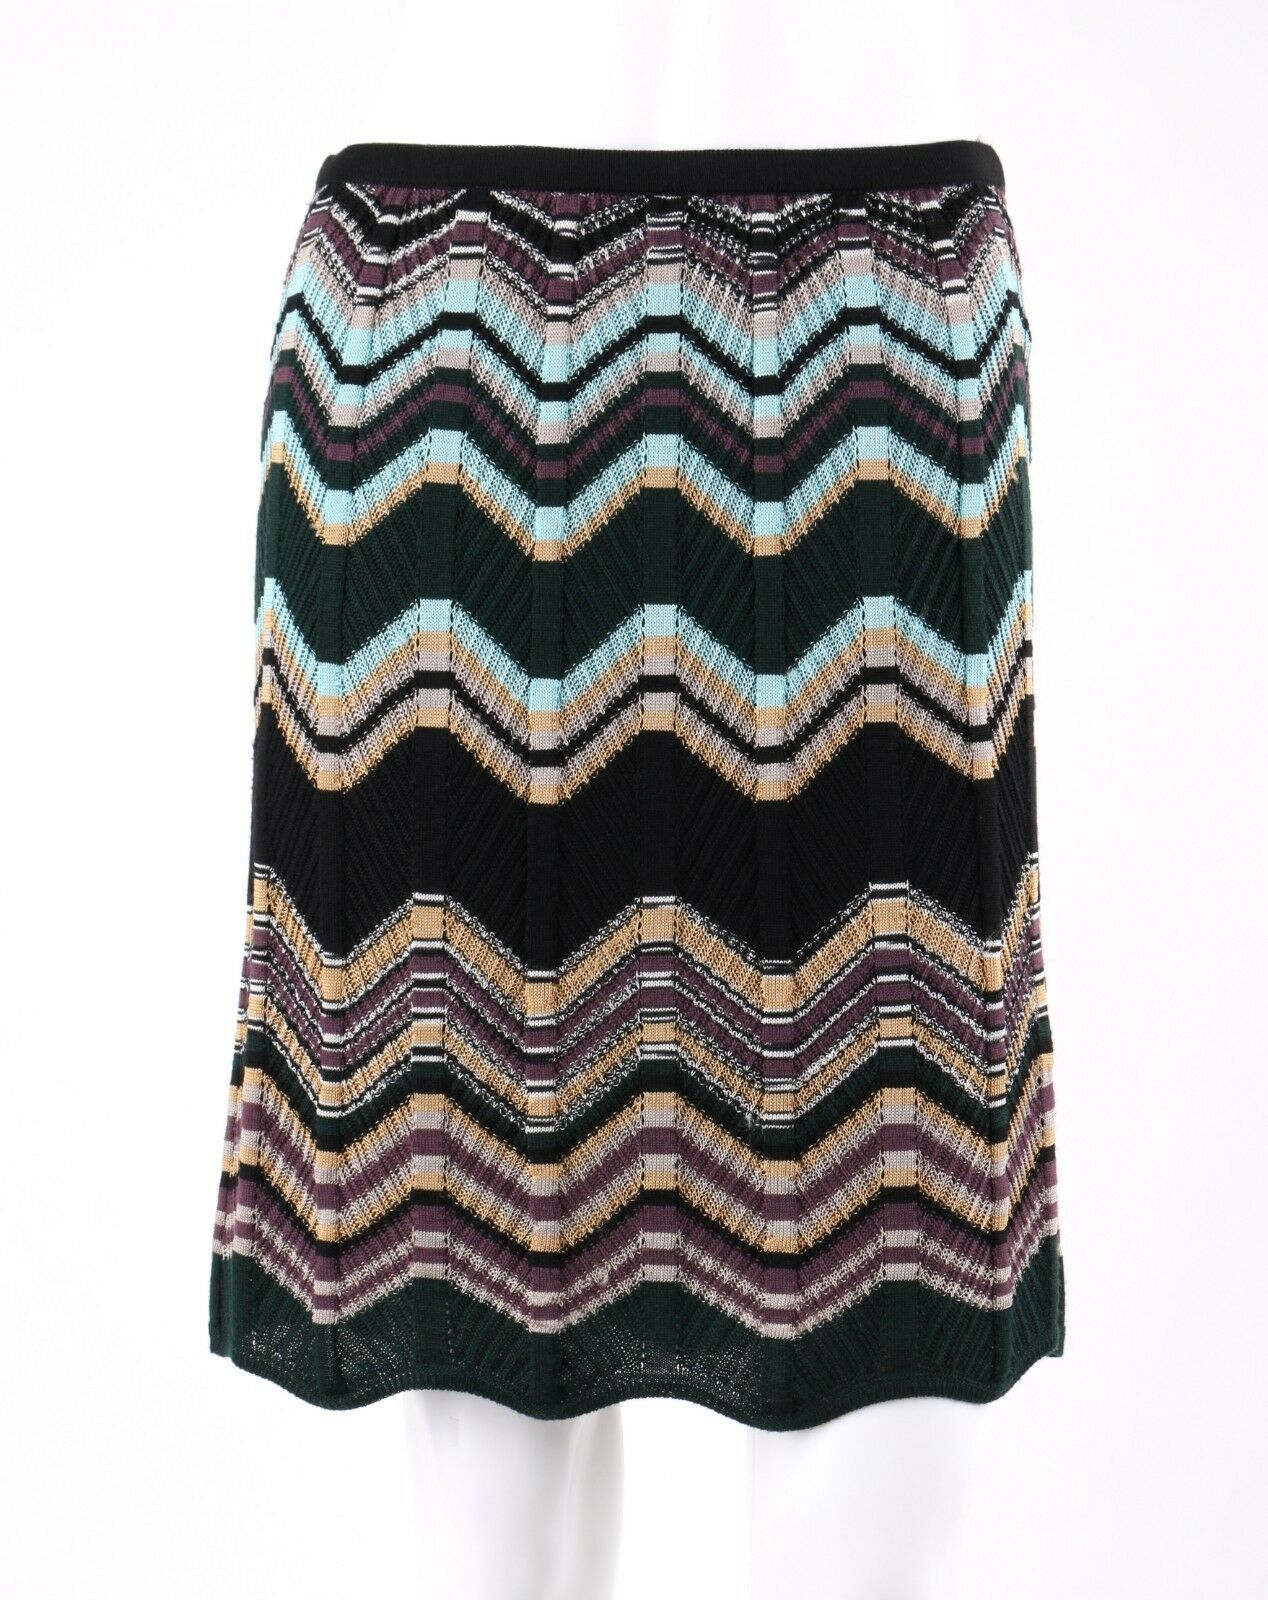 MISSONI Chevron Zig Zag Knit Scallop Hem Knee Length Stretch Skirt Size 42